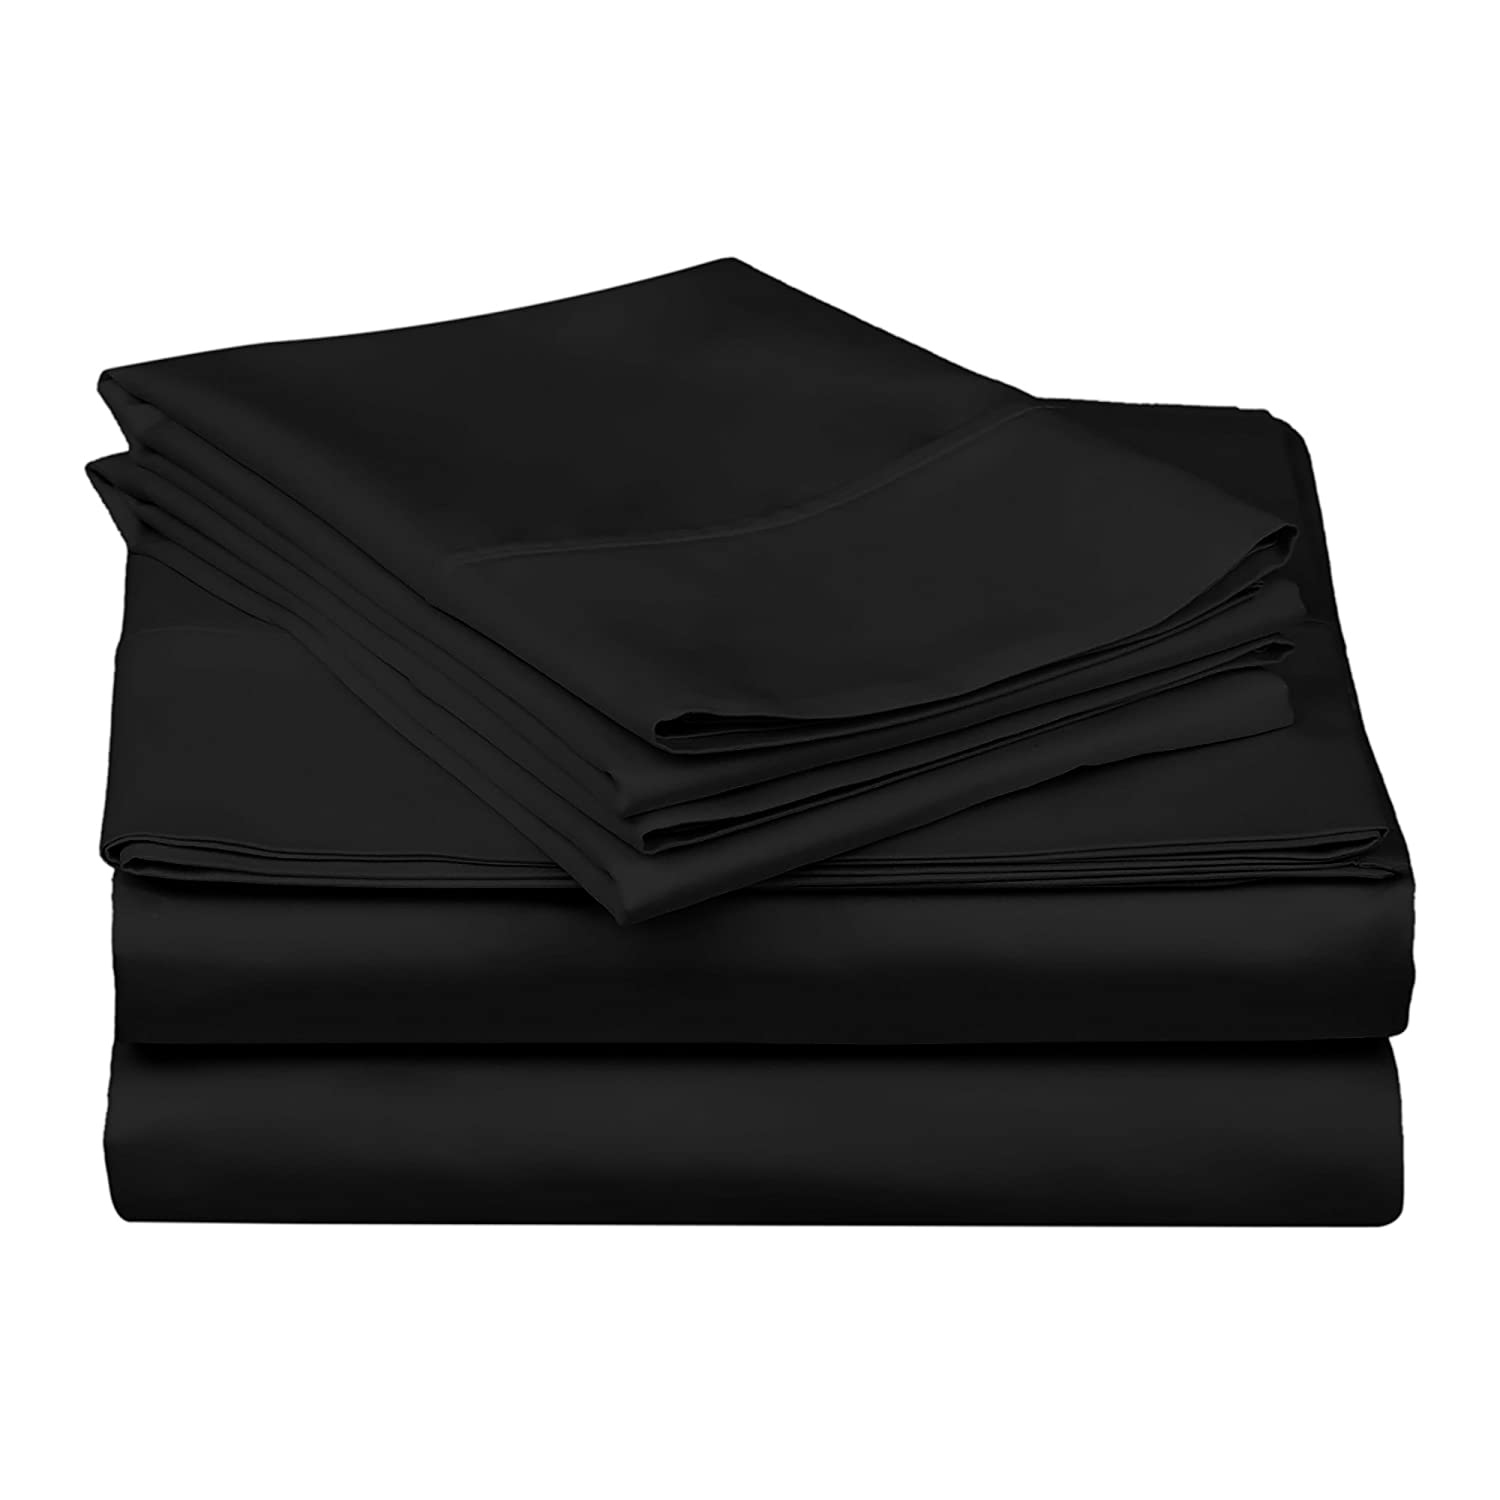 100% Premium Long-Staple Combed Cotton 300 Thread Count Twin XL 3-Piece Sheet Set, Deep Pocket, Single Ply, Solid, Black Luxor Treasures BKXLSHSL300